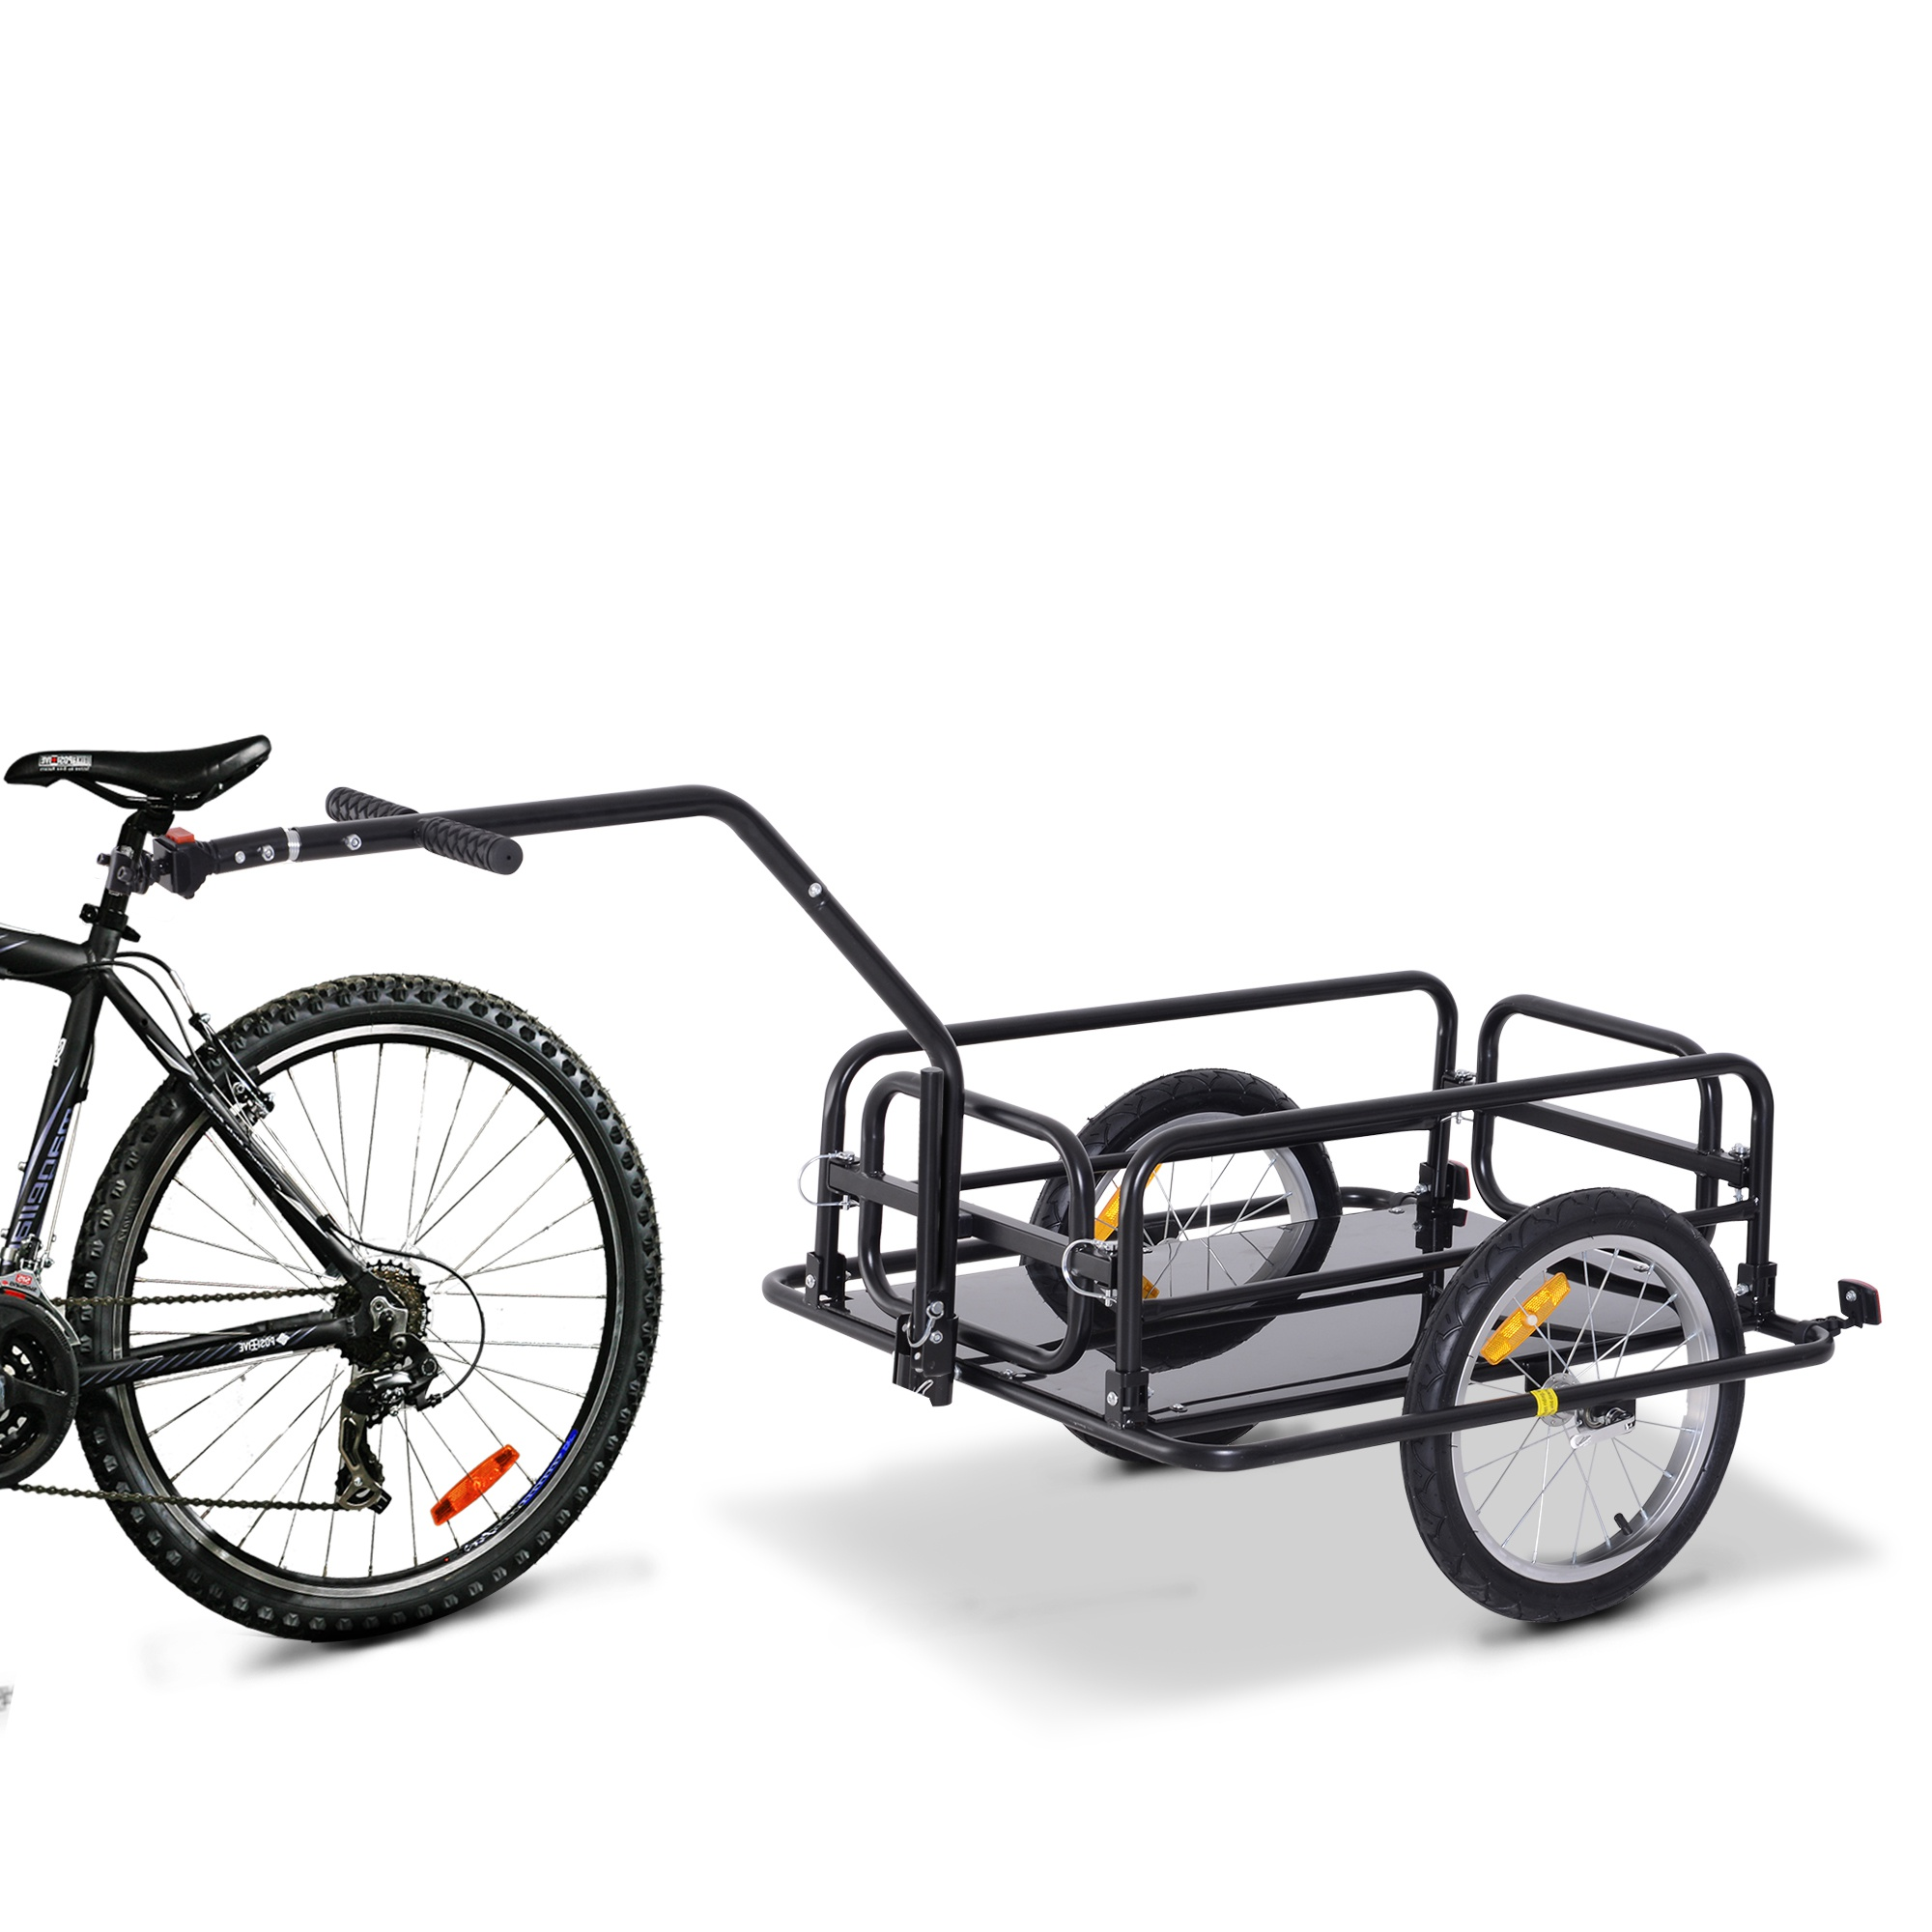 HOMCOM Folding Bicycle Cargo Storage Cart and Luggage Trailer with Hitch Black